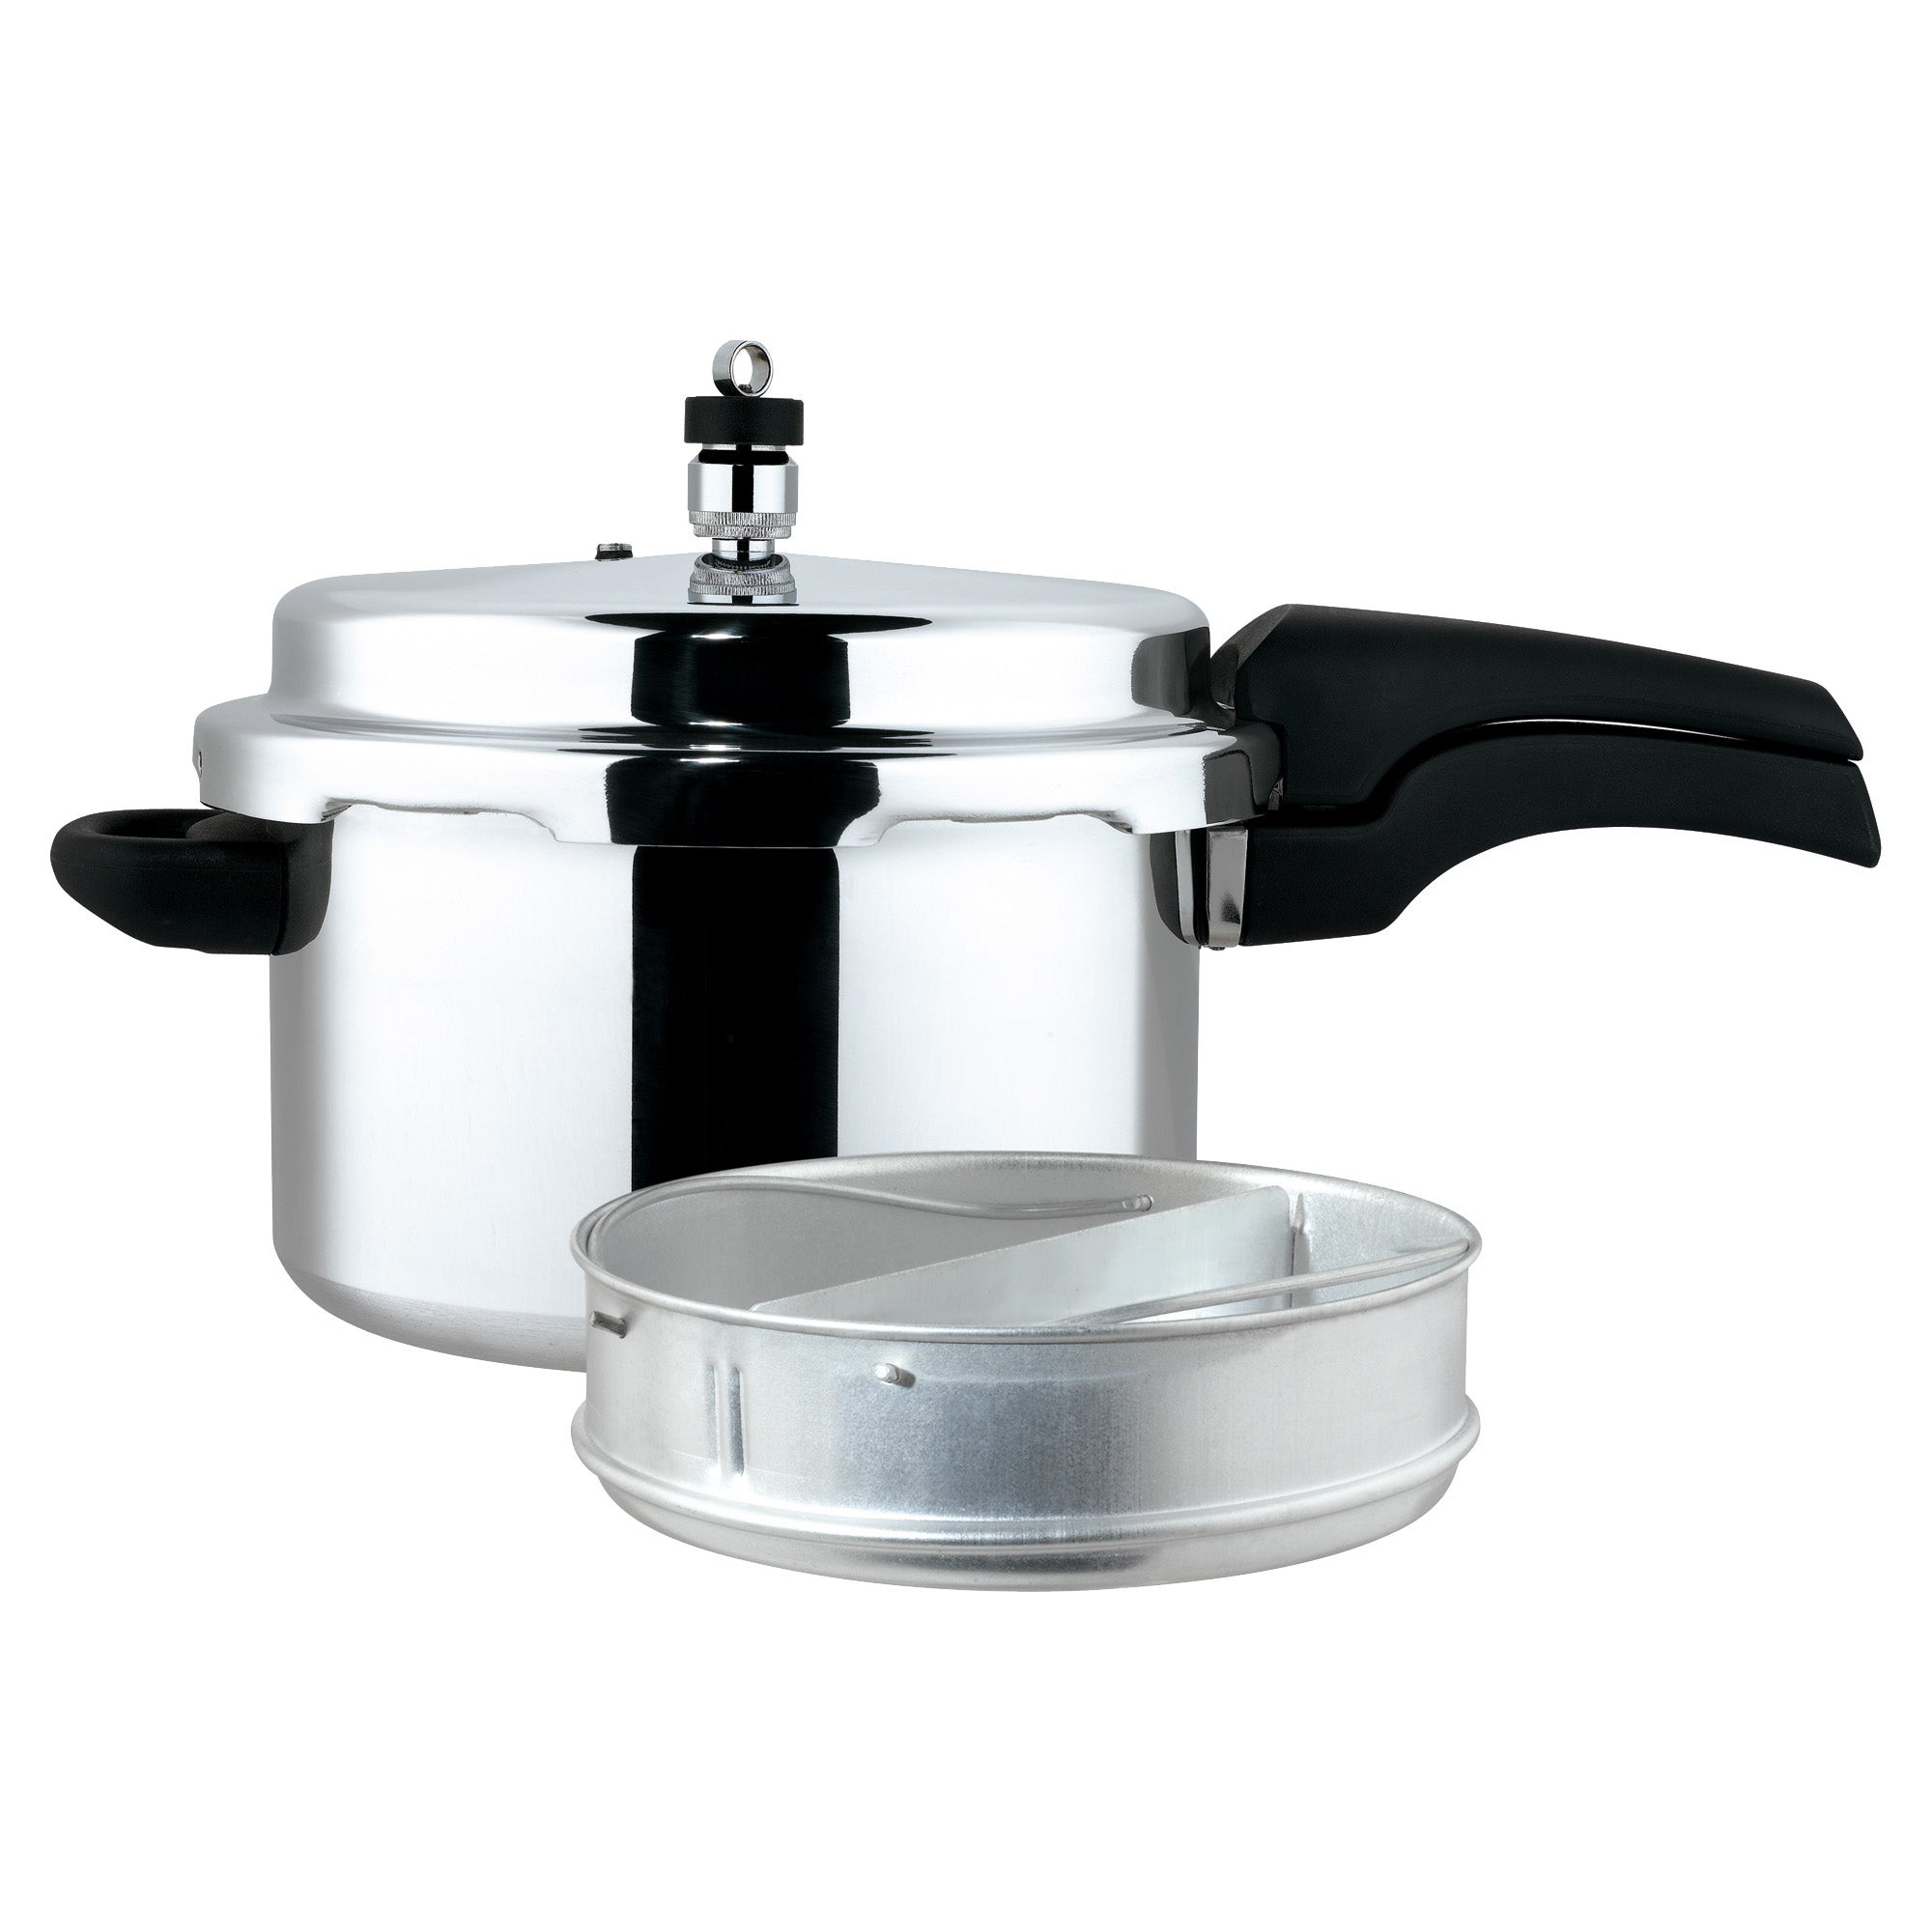 Prestige 4 Litre High Dome Pressure Cooker